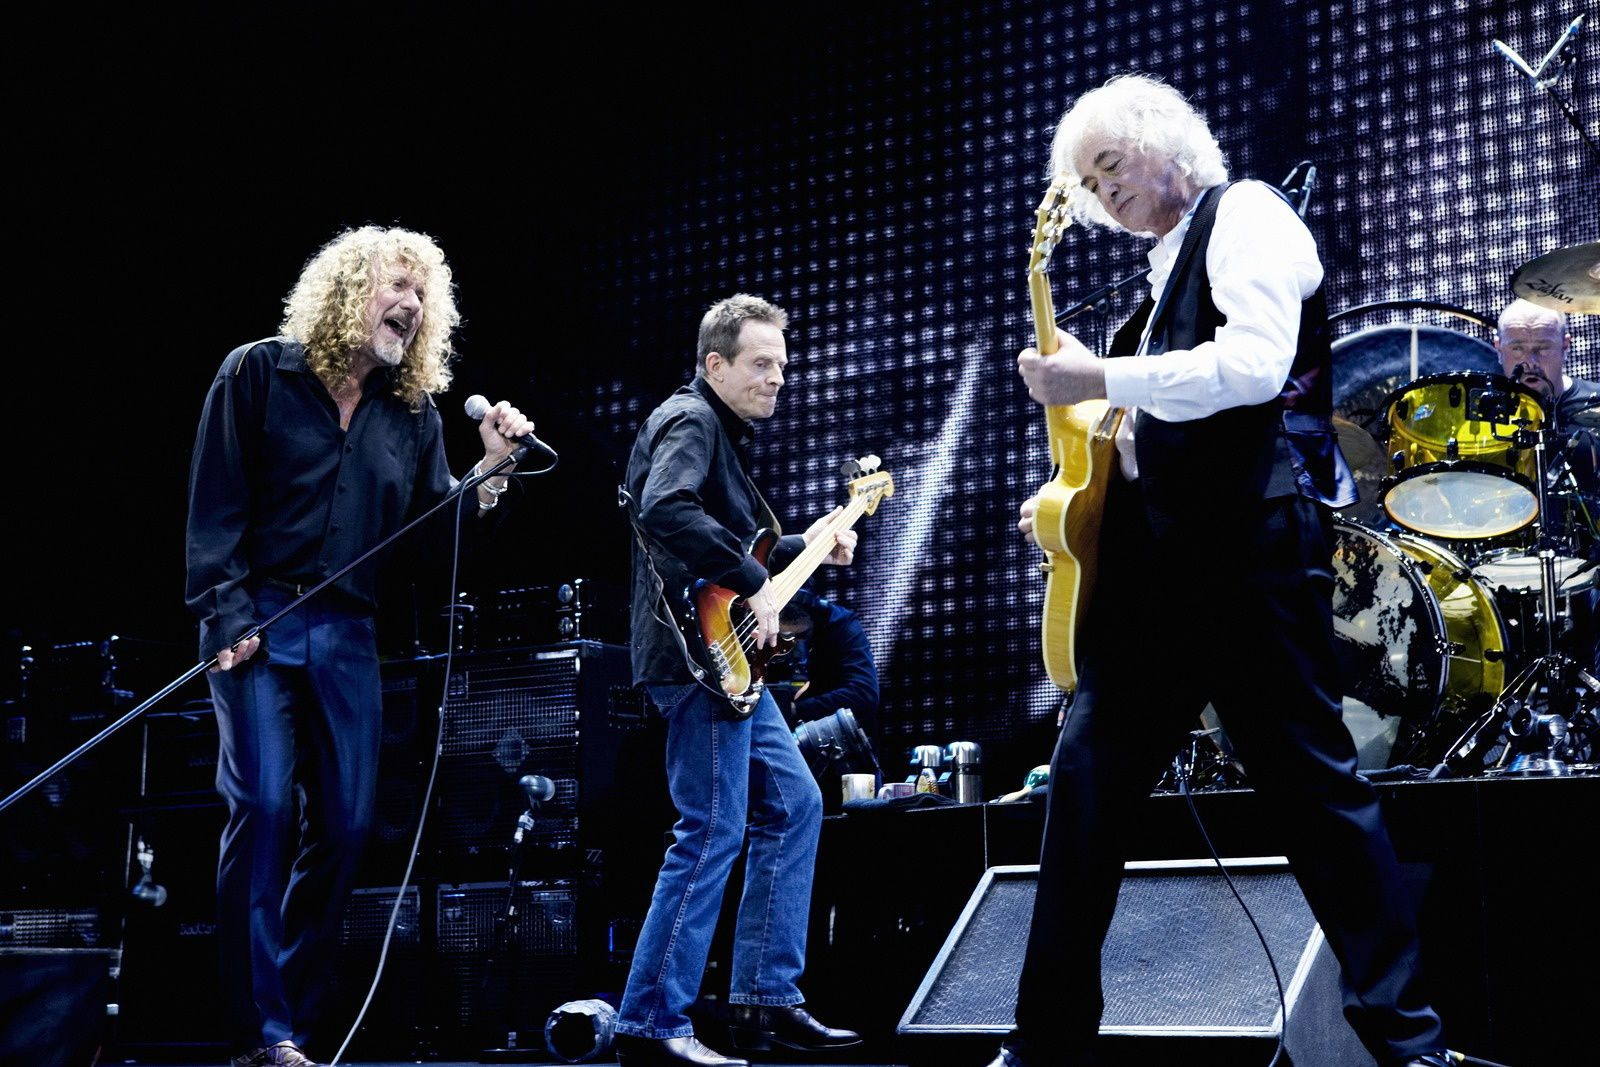 John Paul Jones, Jimmy Page and Robert Plant (Led Zeppelin) - Live at O2